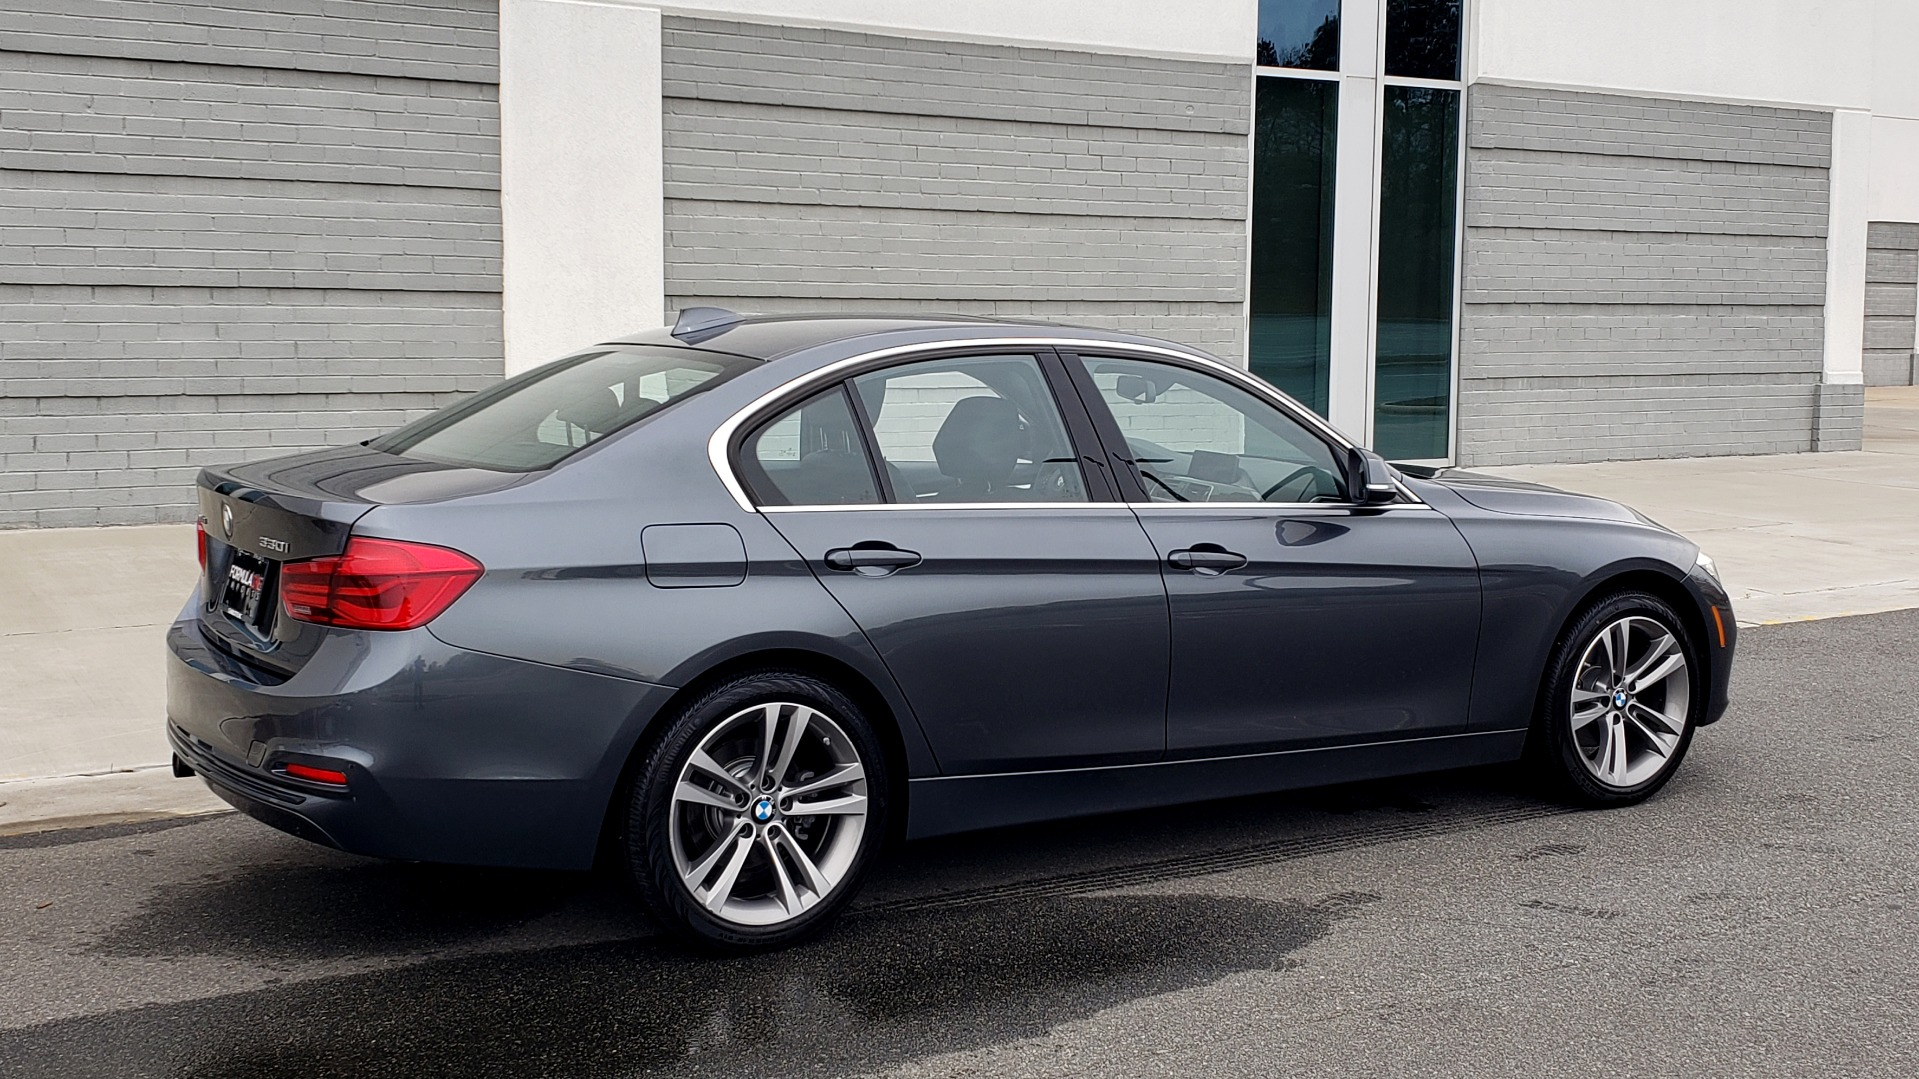 Used 2018 BMW 3 SERIES 330I XDRIVE PREMIUM / CONV PKG NAV / BLIND SPOT / HTD STS / REARVIEW for sale $22,695 at Formula Imports in Charlotte NC 28227 3